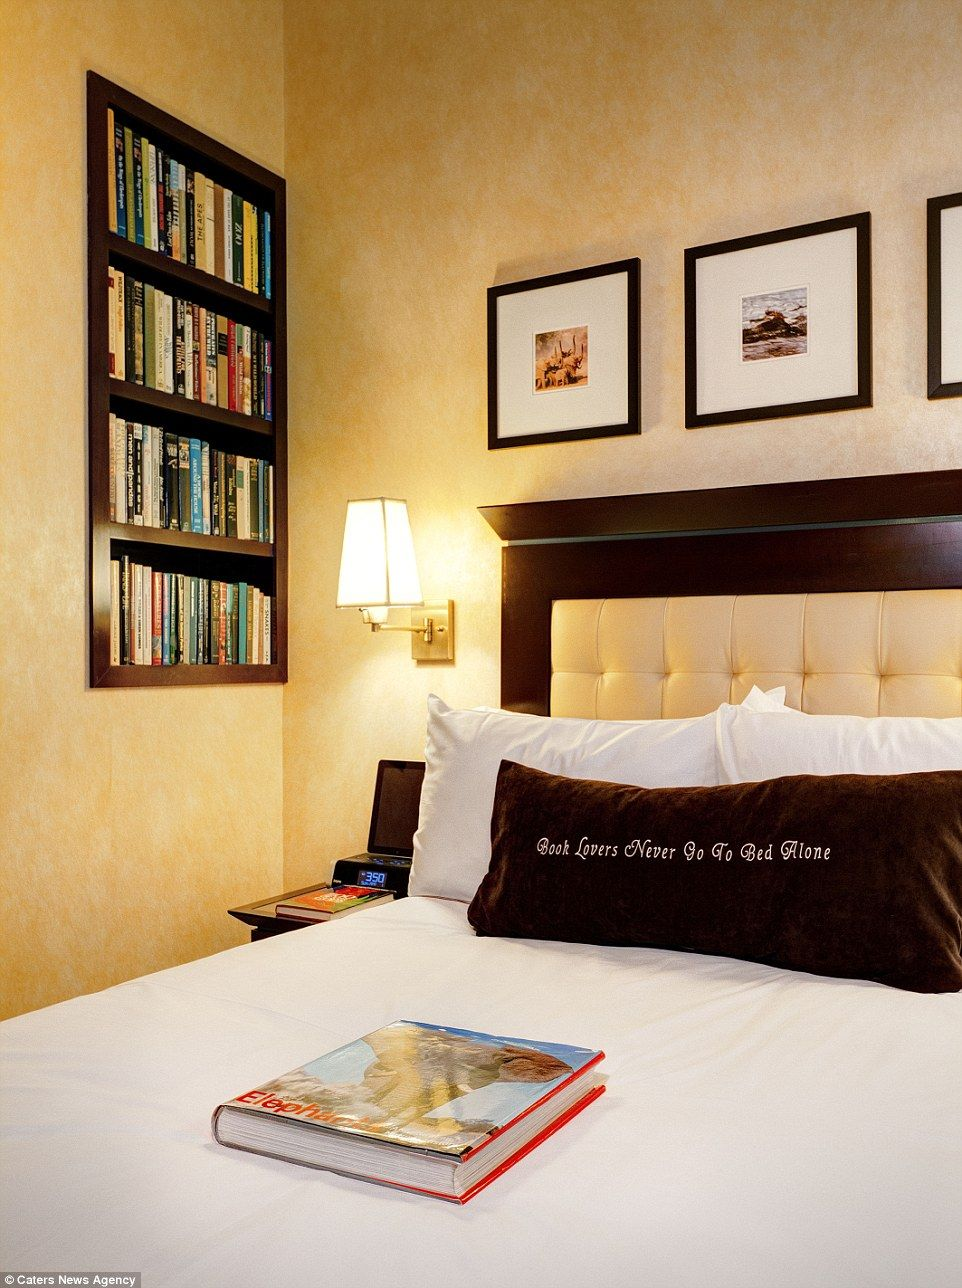 New York Hotel Designs Rooms According To Dewey Decimal System